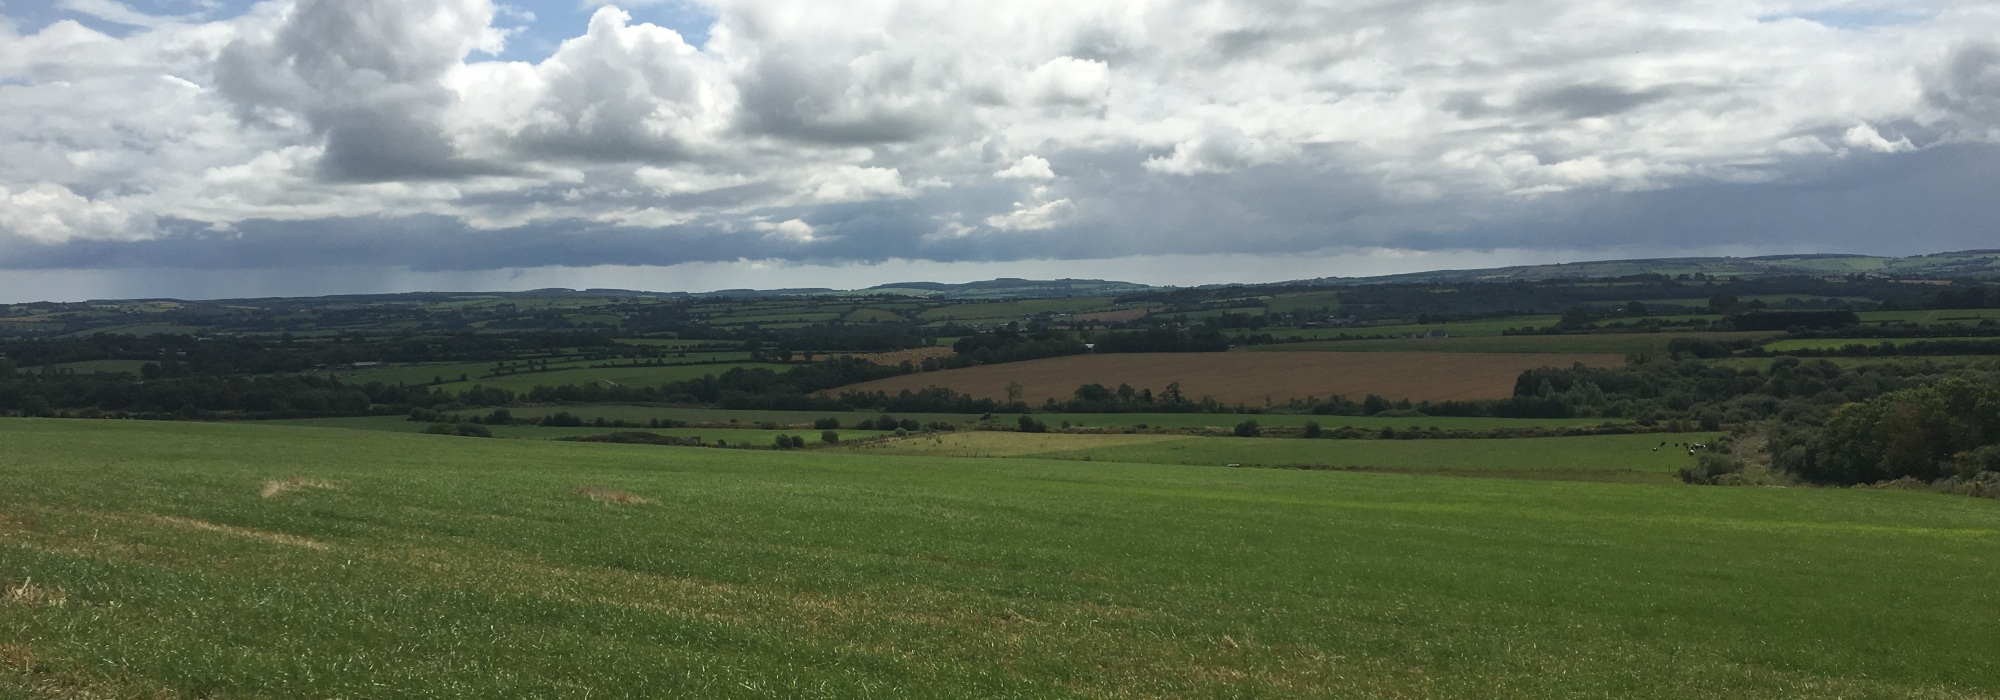 80 Acres Agricultural Land : Currabeha, Fermoy, Co. Cork